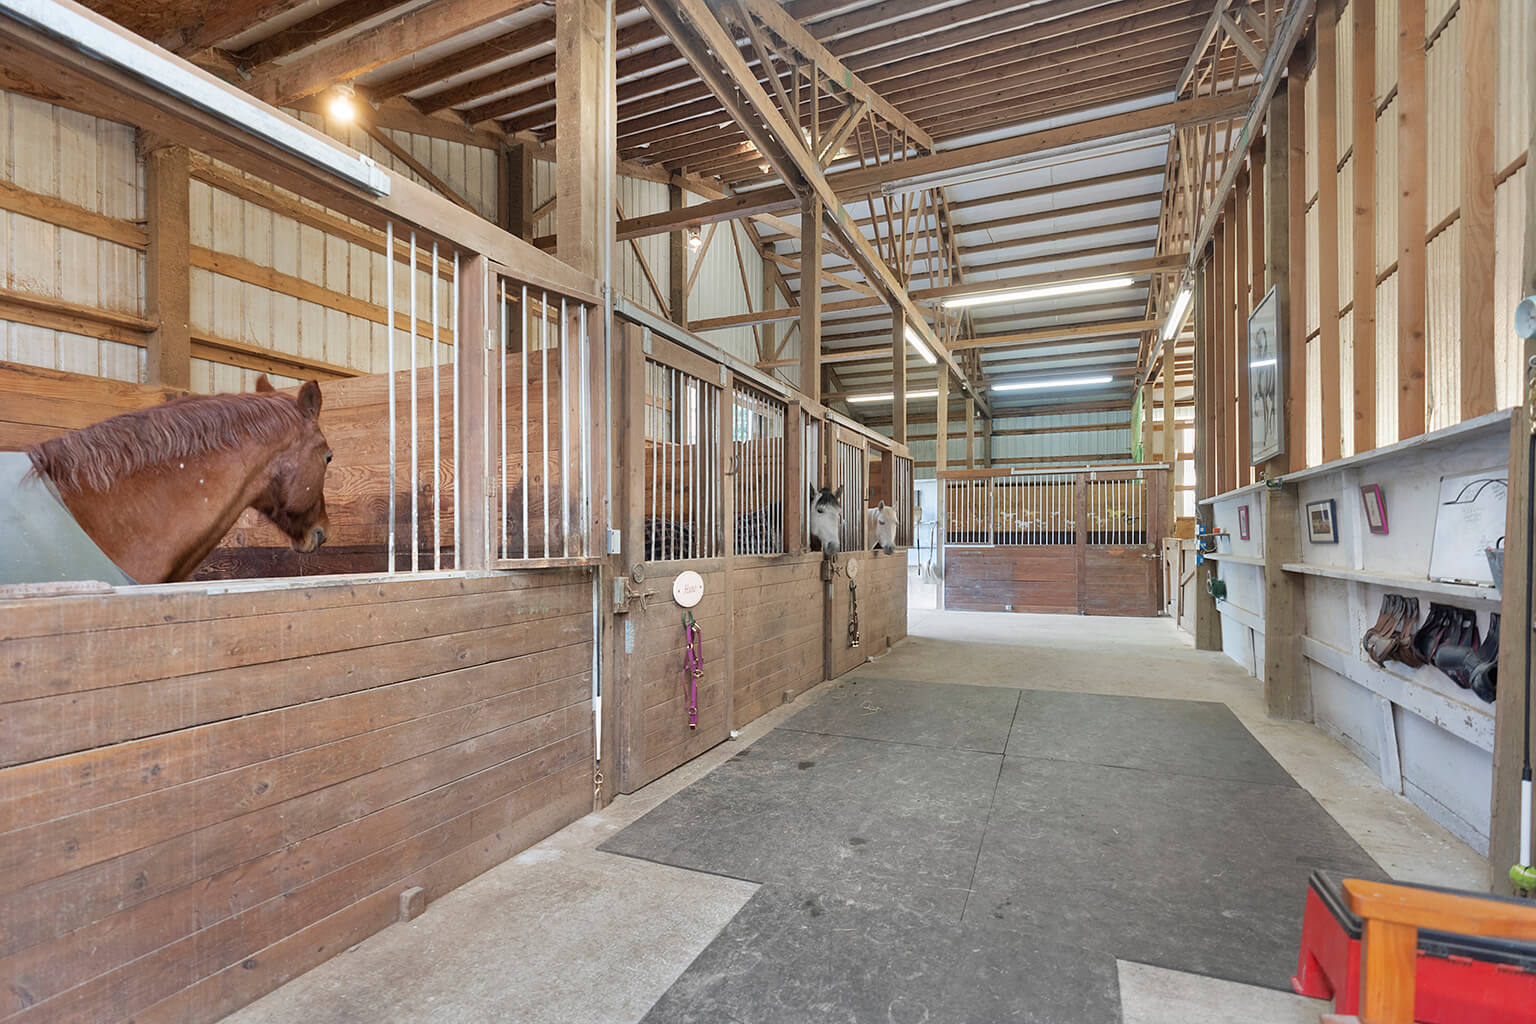 Five stall show barn with 12' wide concrete aisle way